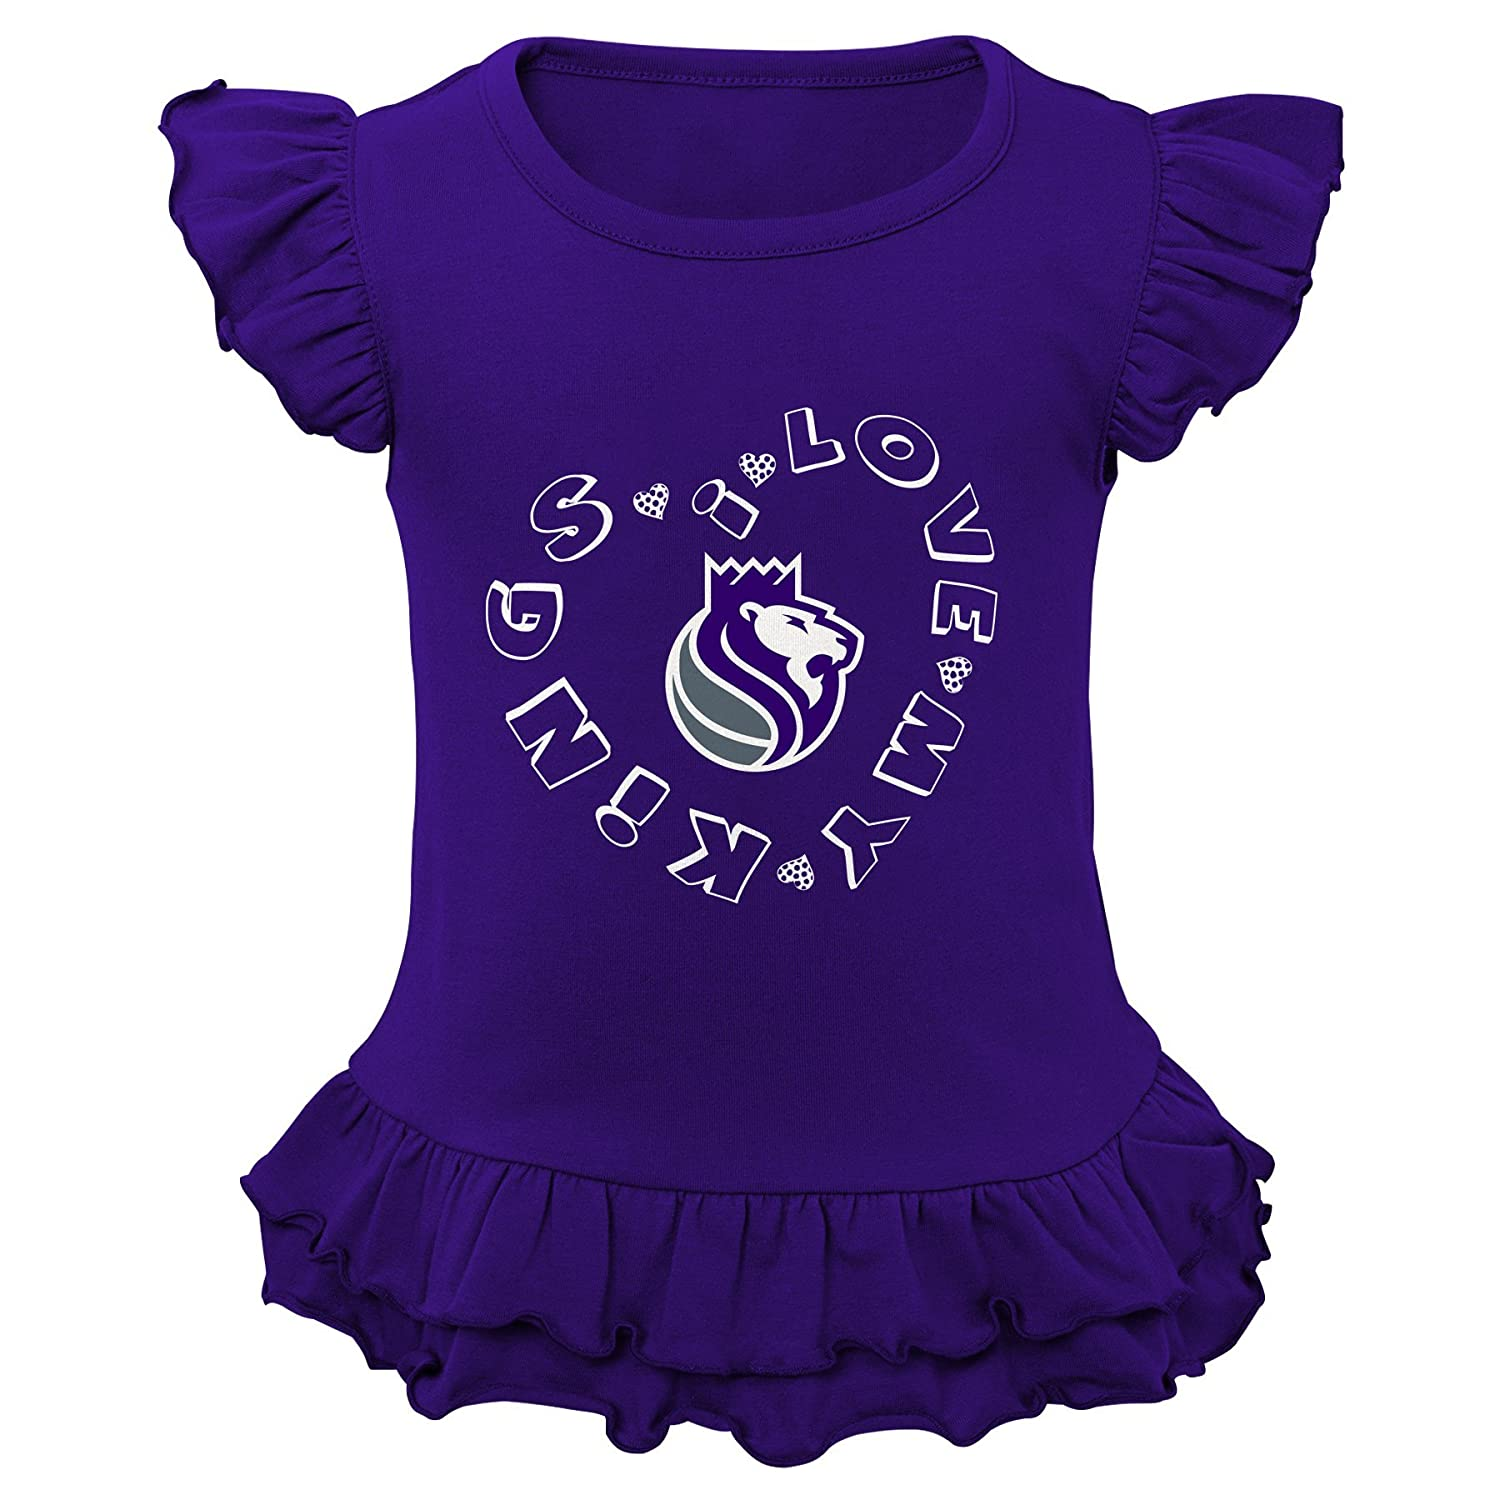 Outerstuff NBA Kids Team Love Ruffle Shirt and Pant Set